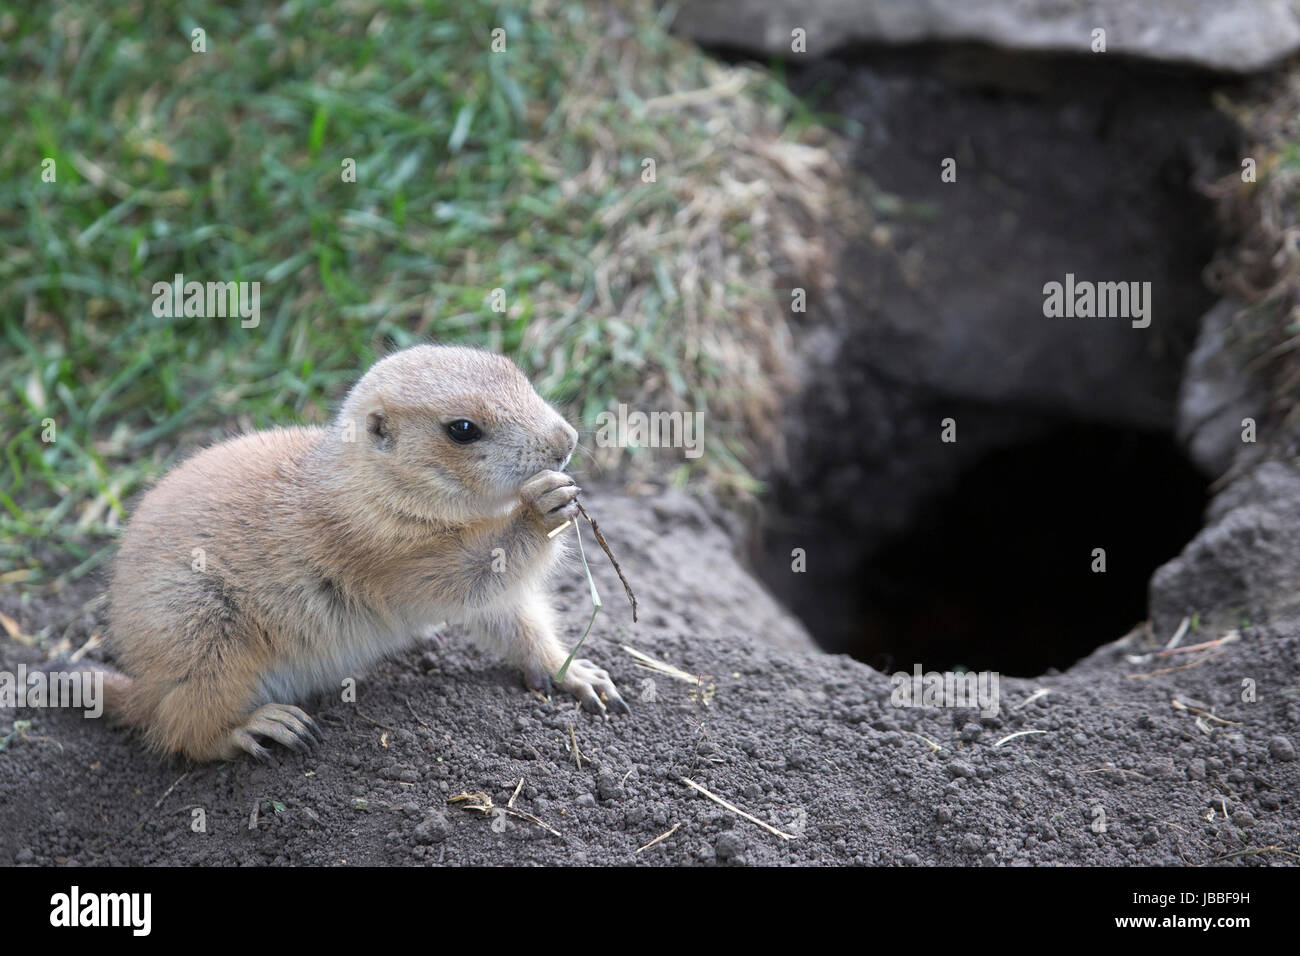 Baby Black-Tailed Prairie Dog (Cynomys ludovicianus) eating grass at entrance to burrow - Stock Image